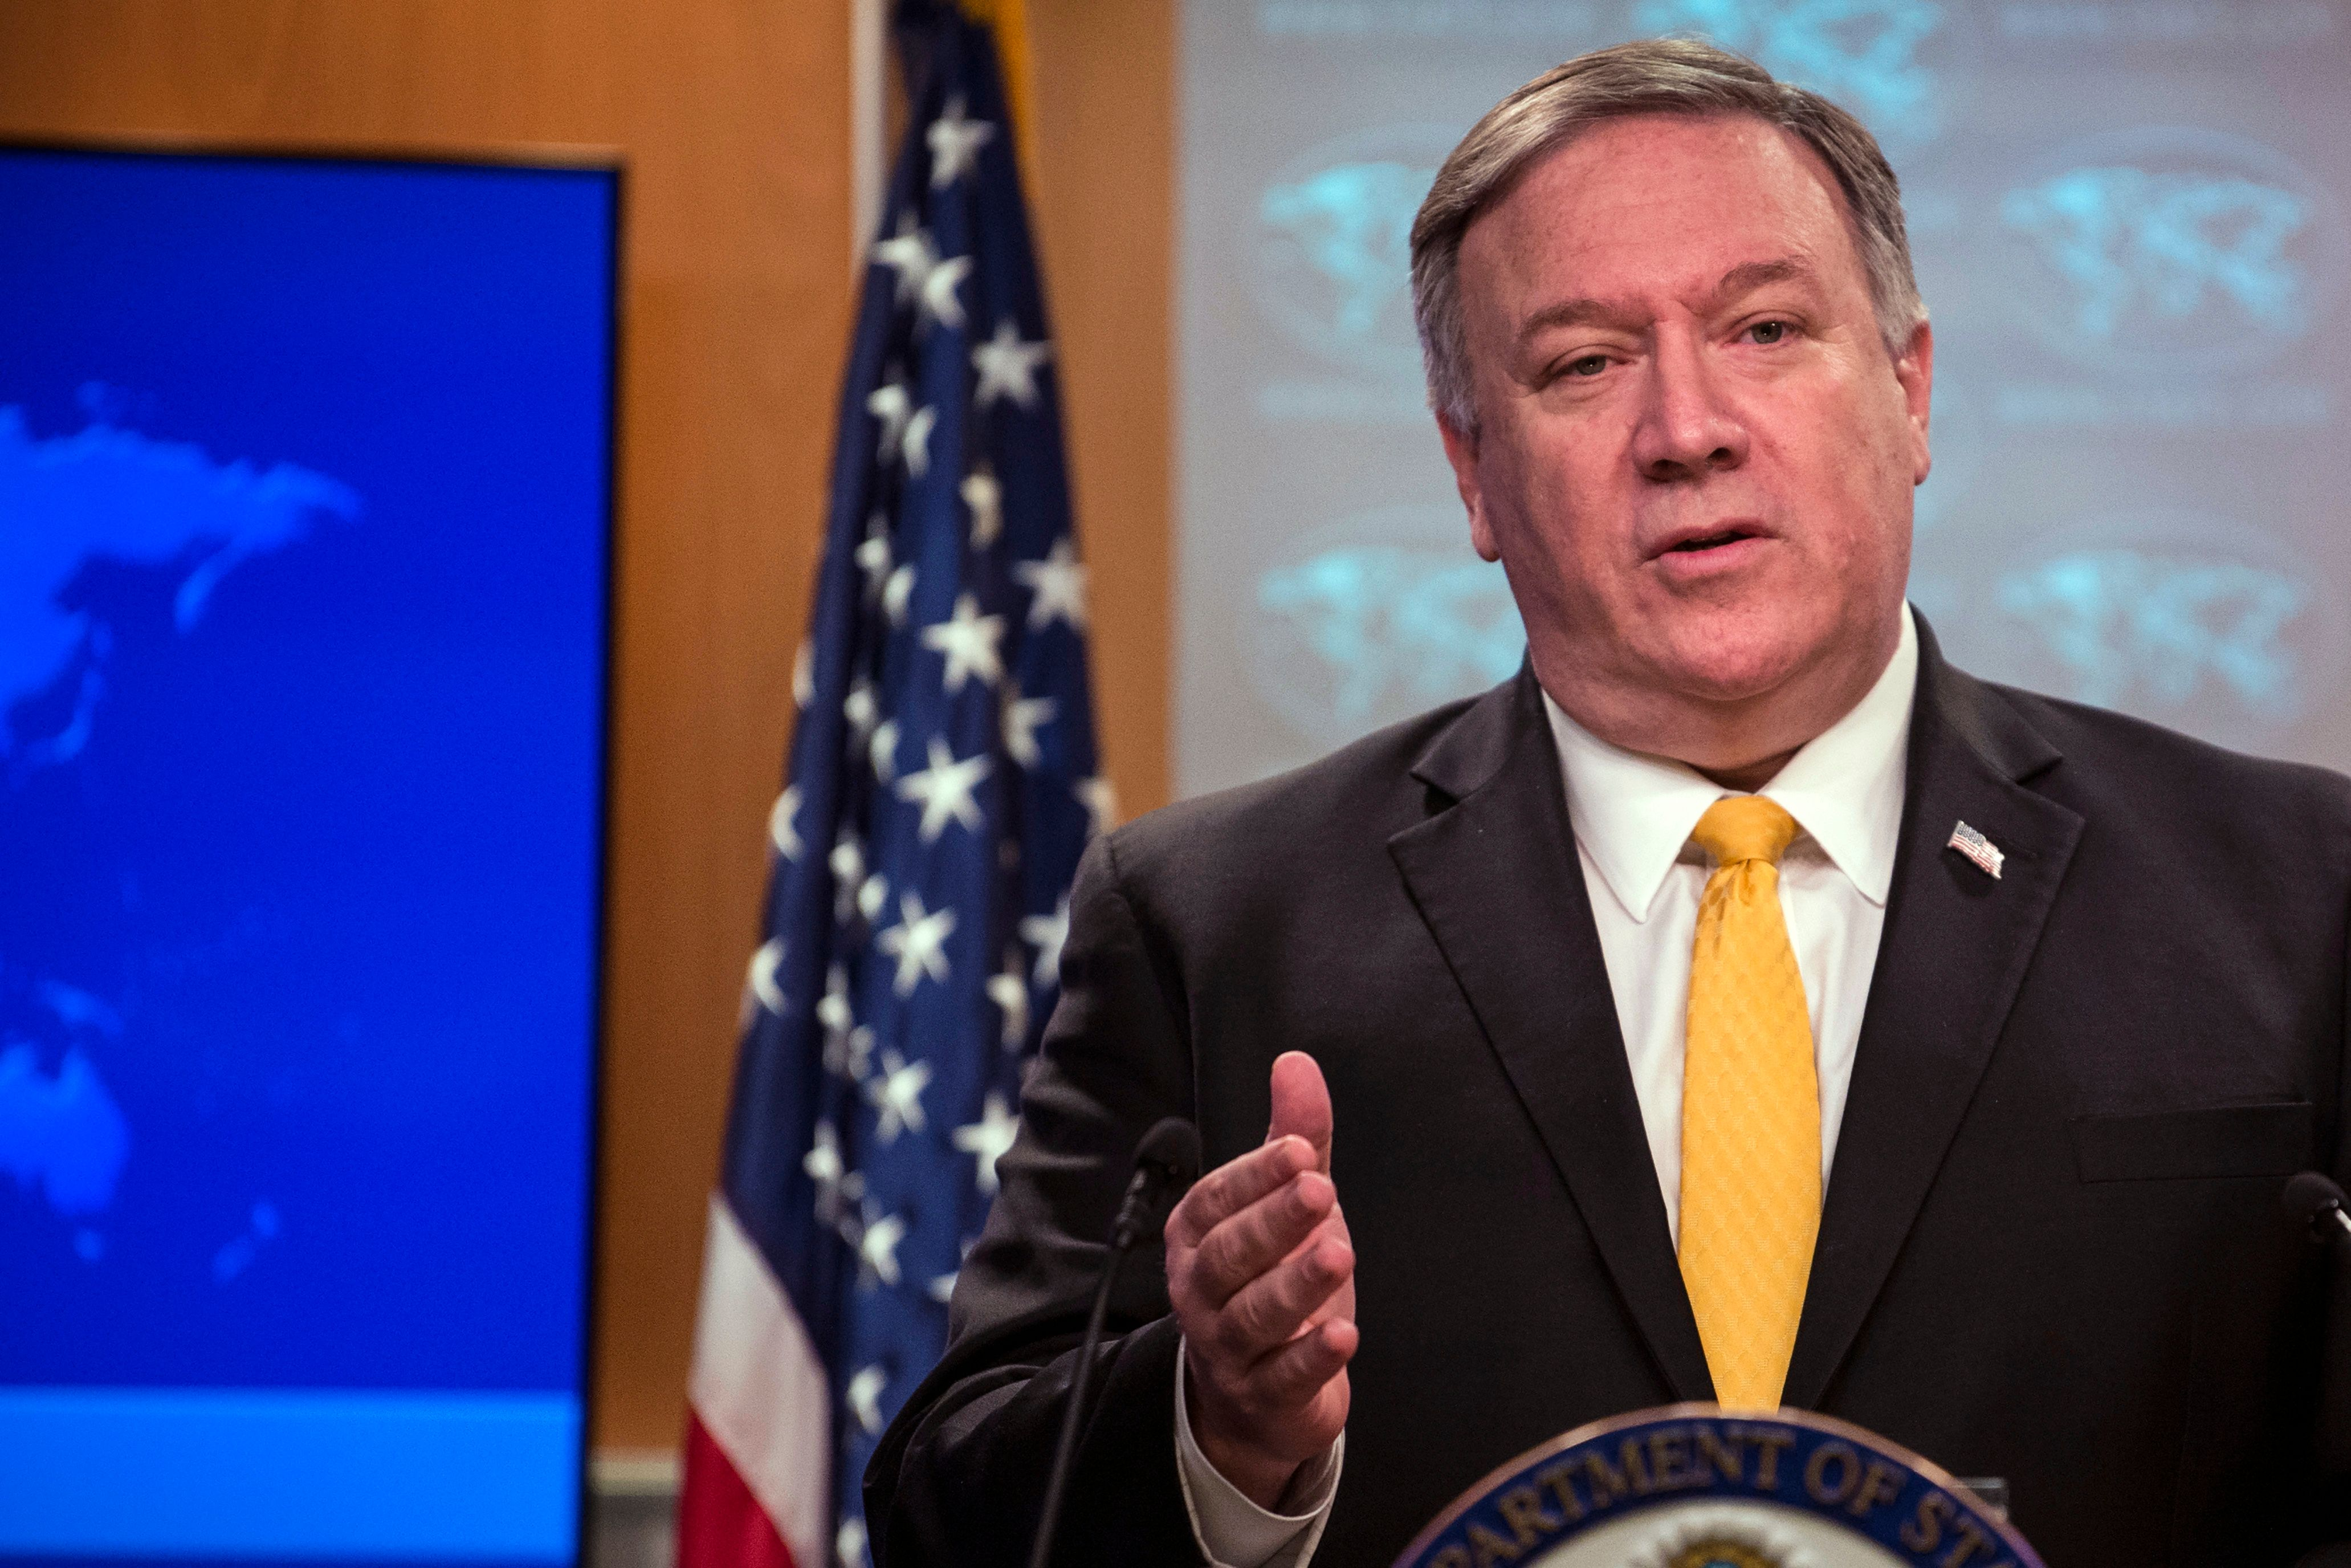 US Secretary of State Mike Pompeo speaks at a press briefing in the State Department in Washington, DC, on February 1, 2019. - Pompeo announced that the US will withdraw from the Intermediate-Range Nuclear Forces Treaty with Russia (Photo by Eric BARADAT / AFP) (Photo credit should read ERIC BARADAT/AFP/Getty Images)